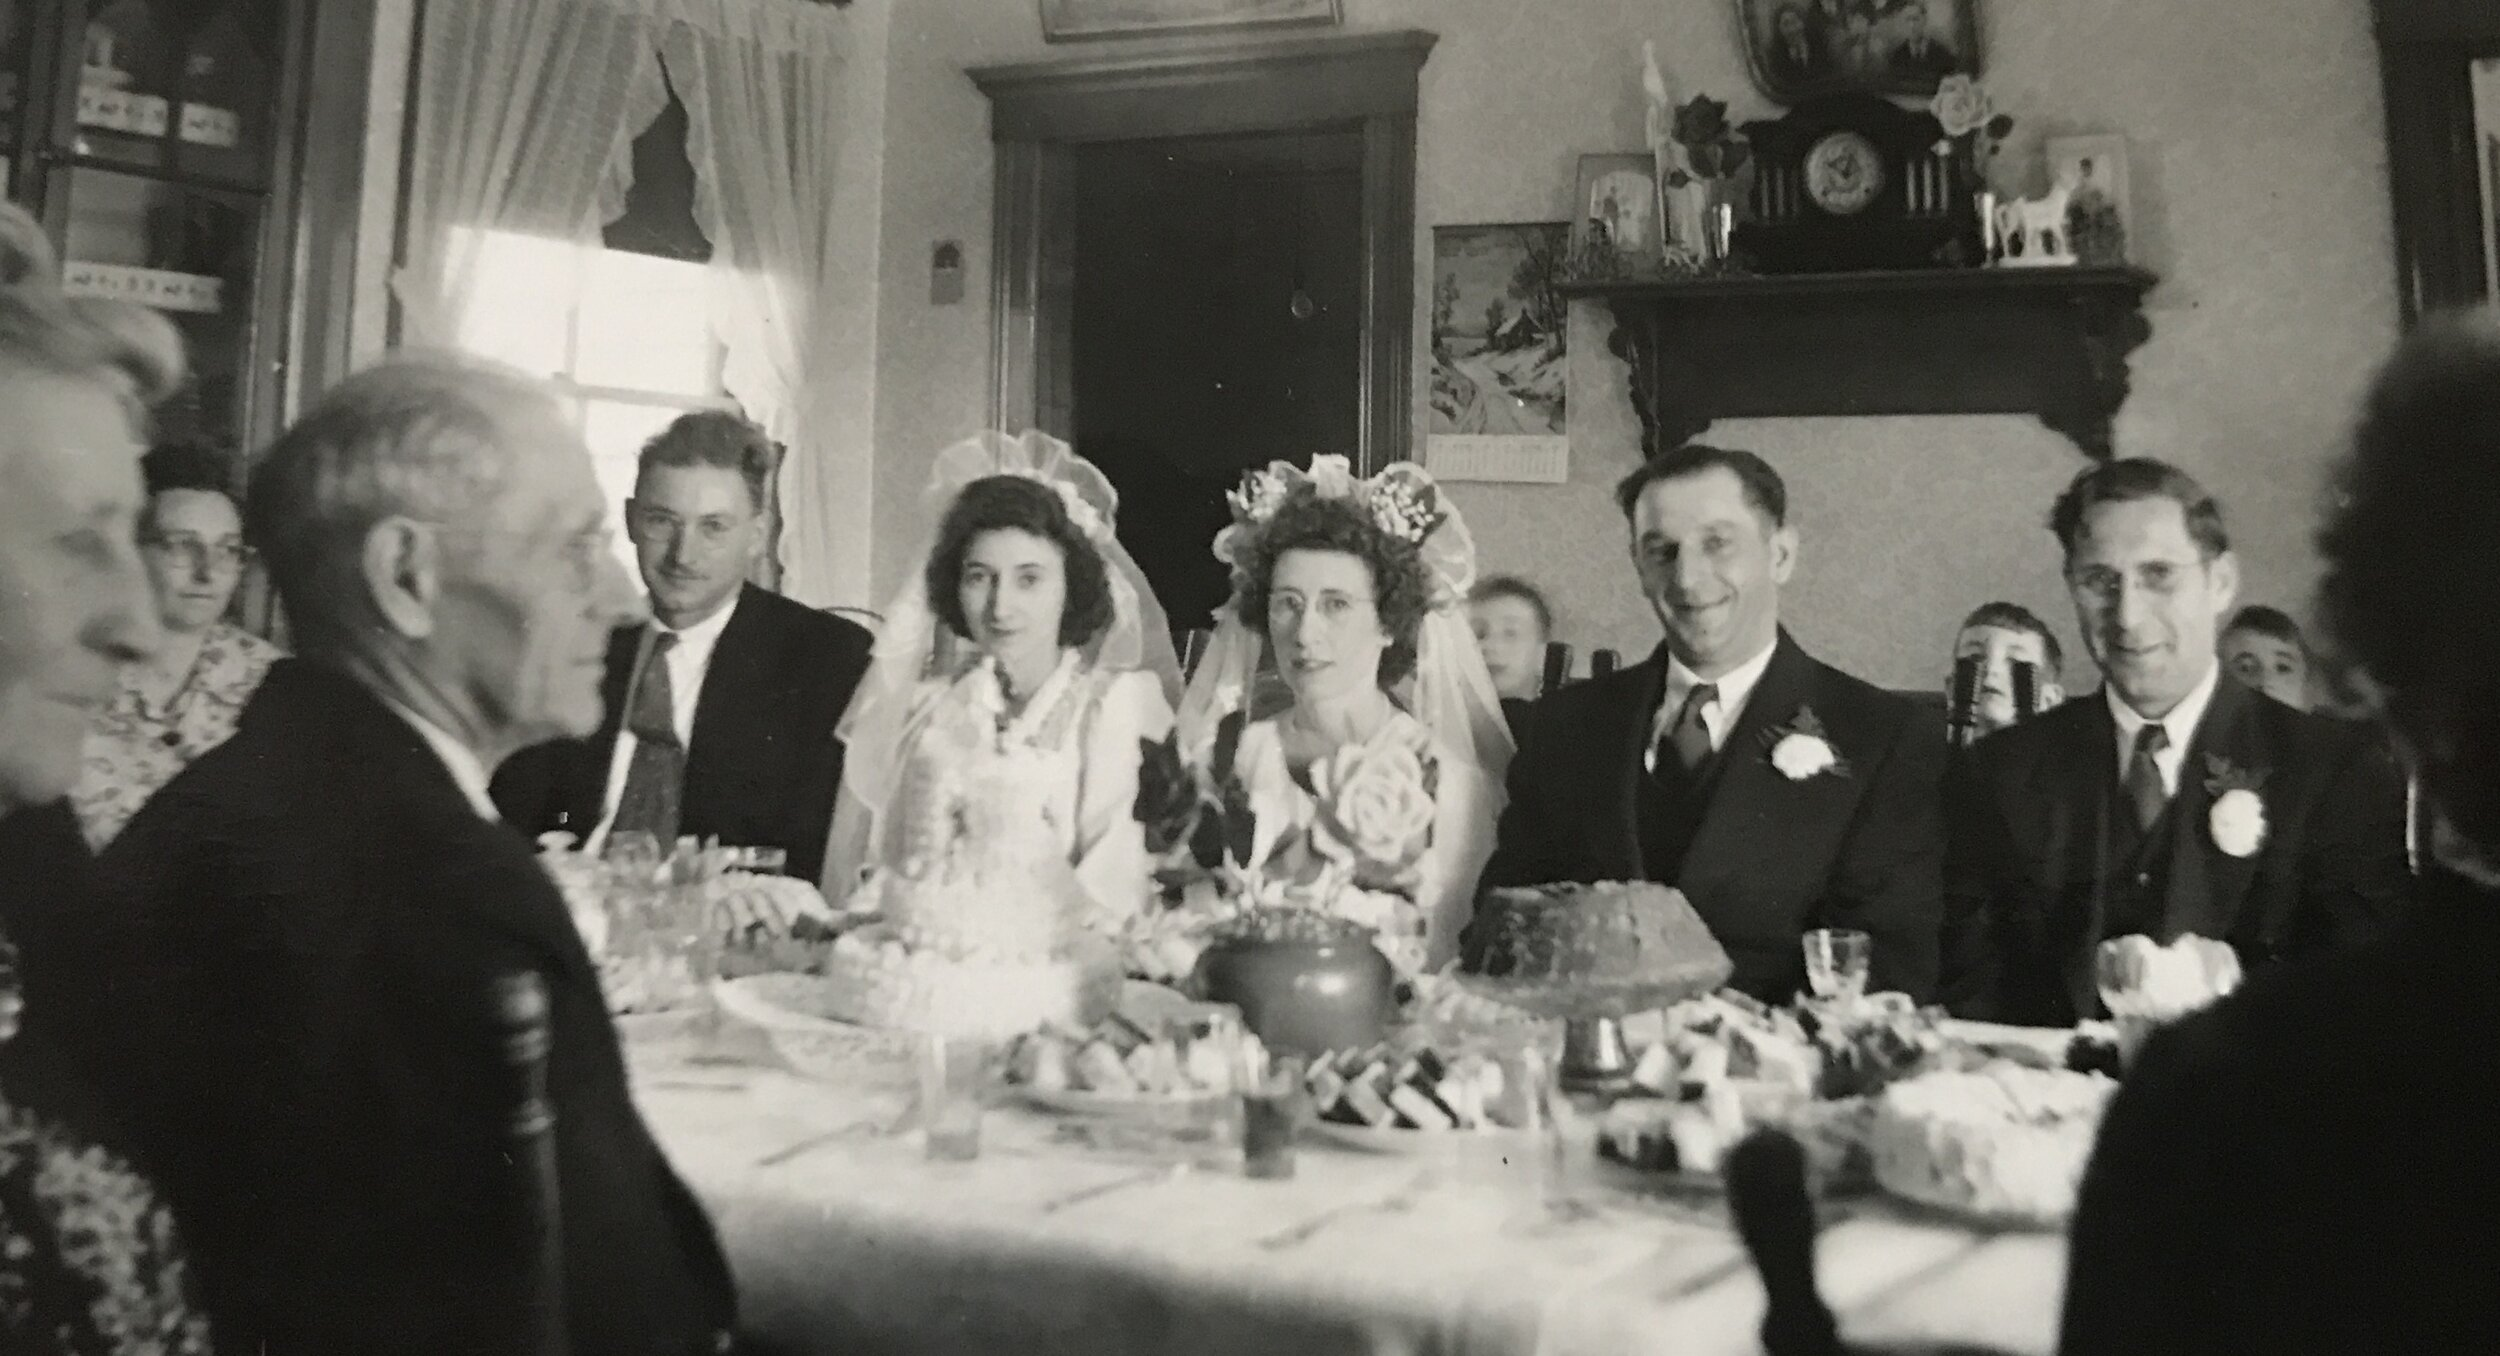 """One of the many unnamed and unknown individuals photographed and found amongst the """"old stuff."""" However, do note the copious amount of sweets, cakes, and whatnot, eaten at many traditional Acadian weddings at the turn of the century."""